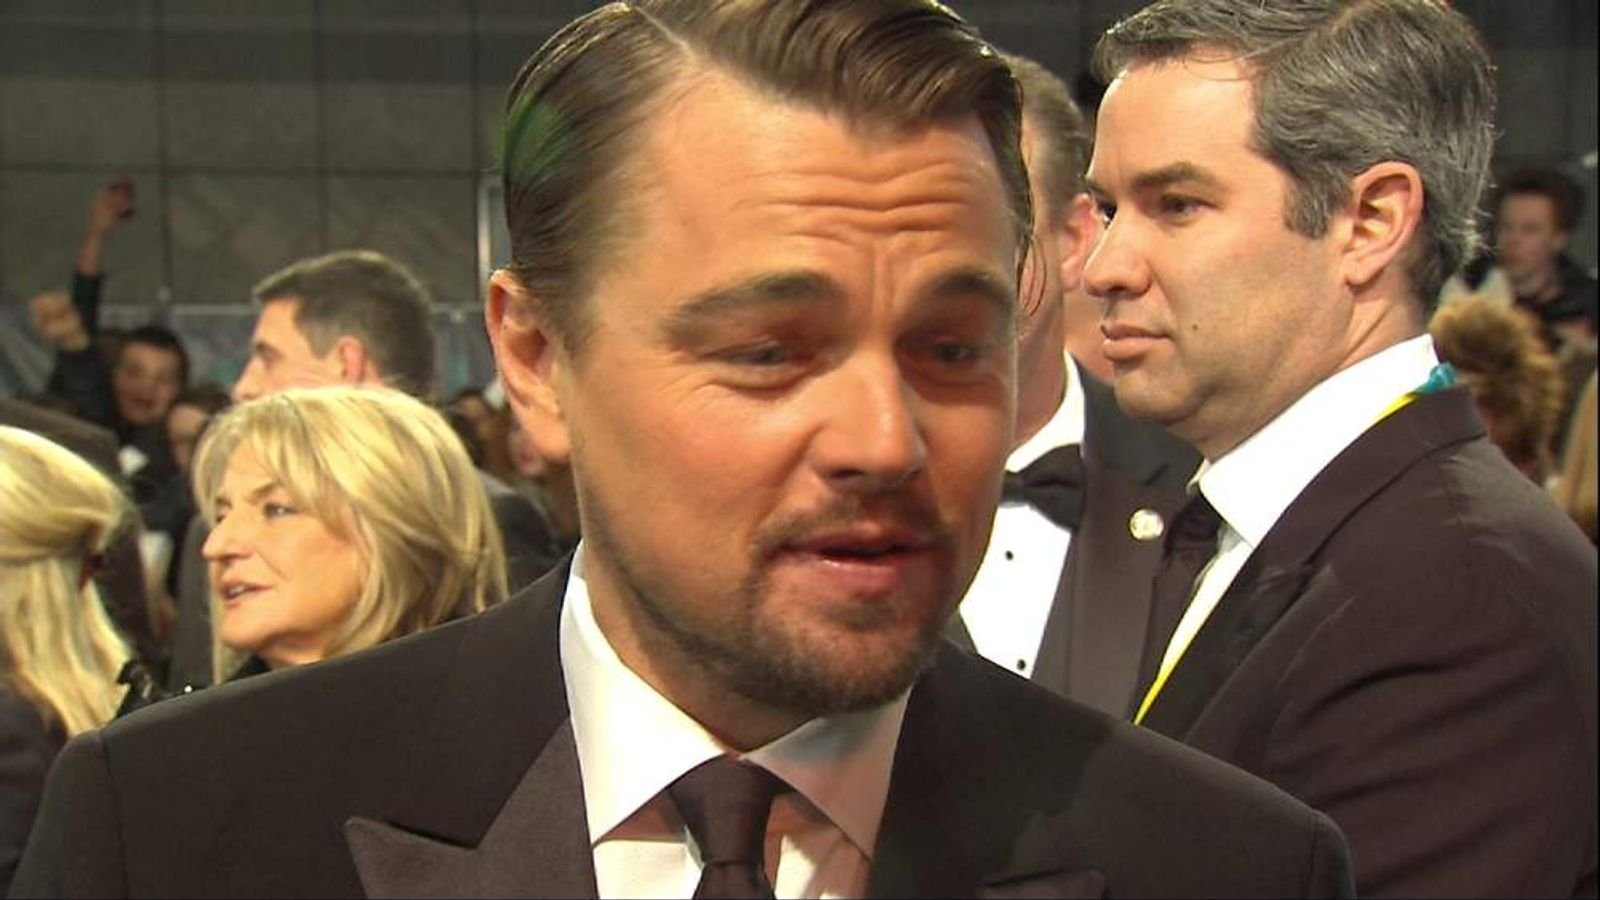 Leonardo DiCaprio Speaks To Sky News